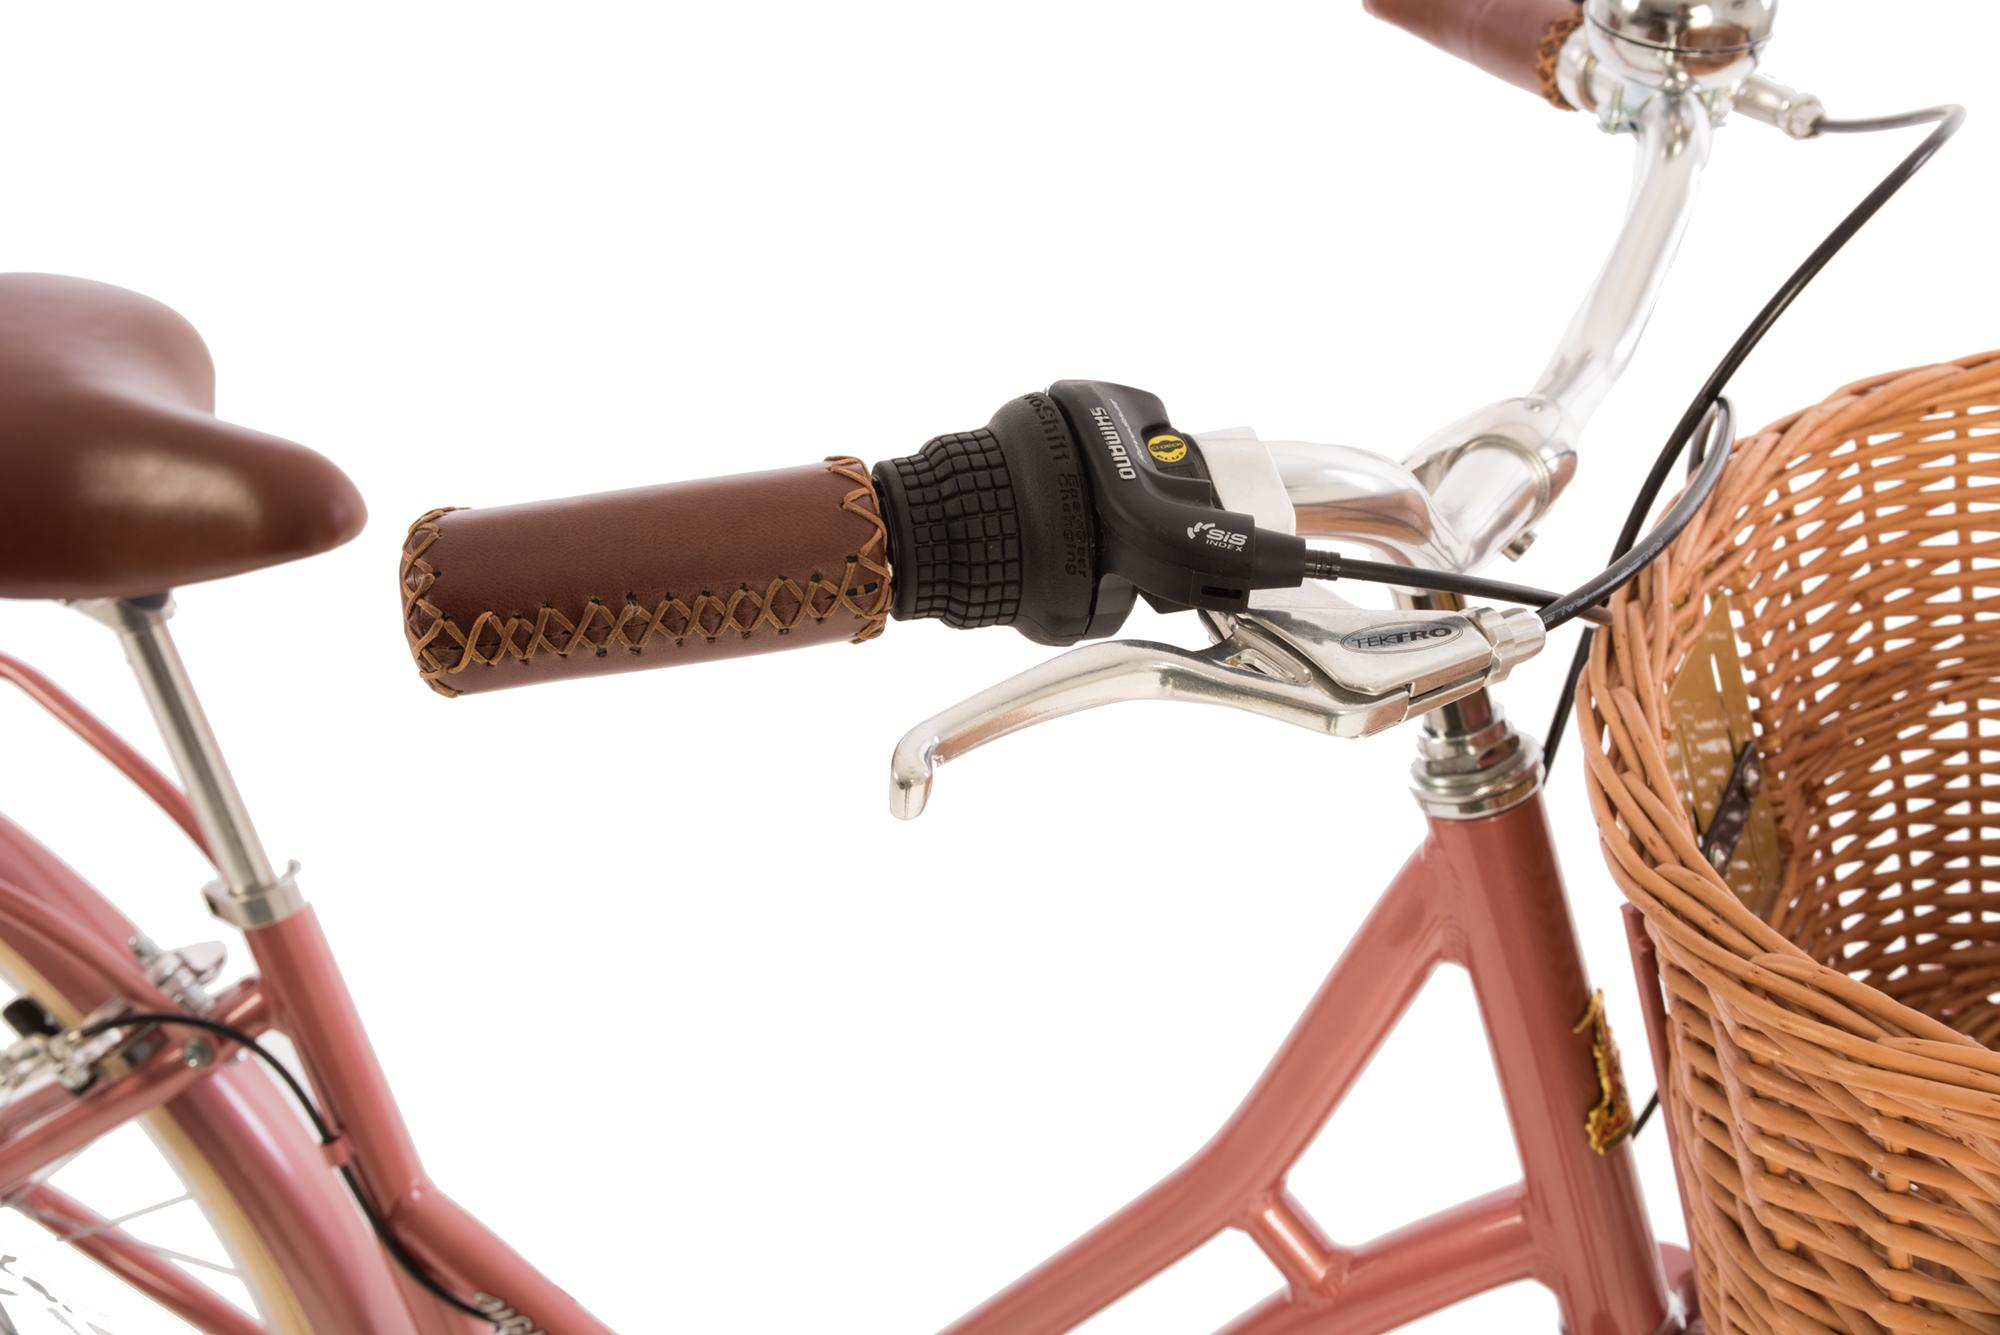 Detail of grip shift and grips on the Raleigh Willow classic ladies bike